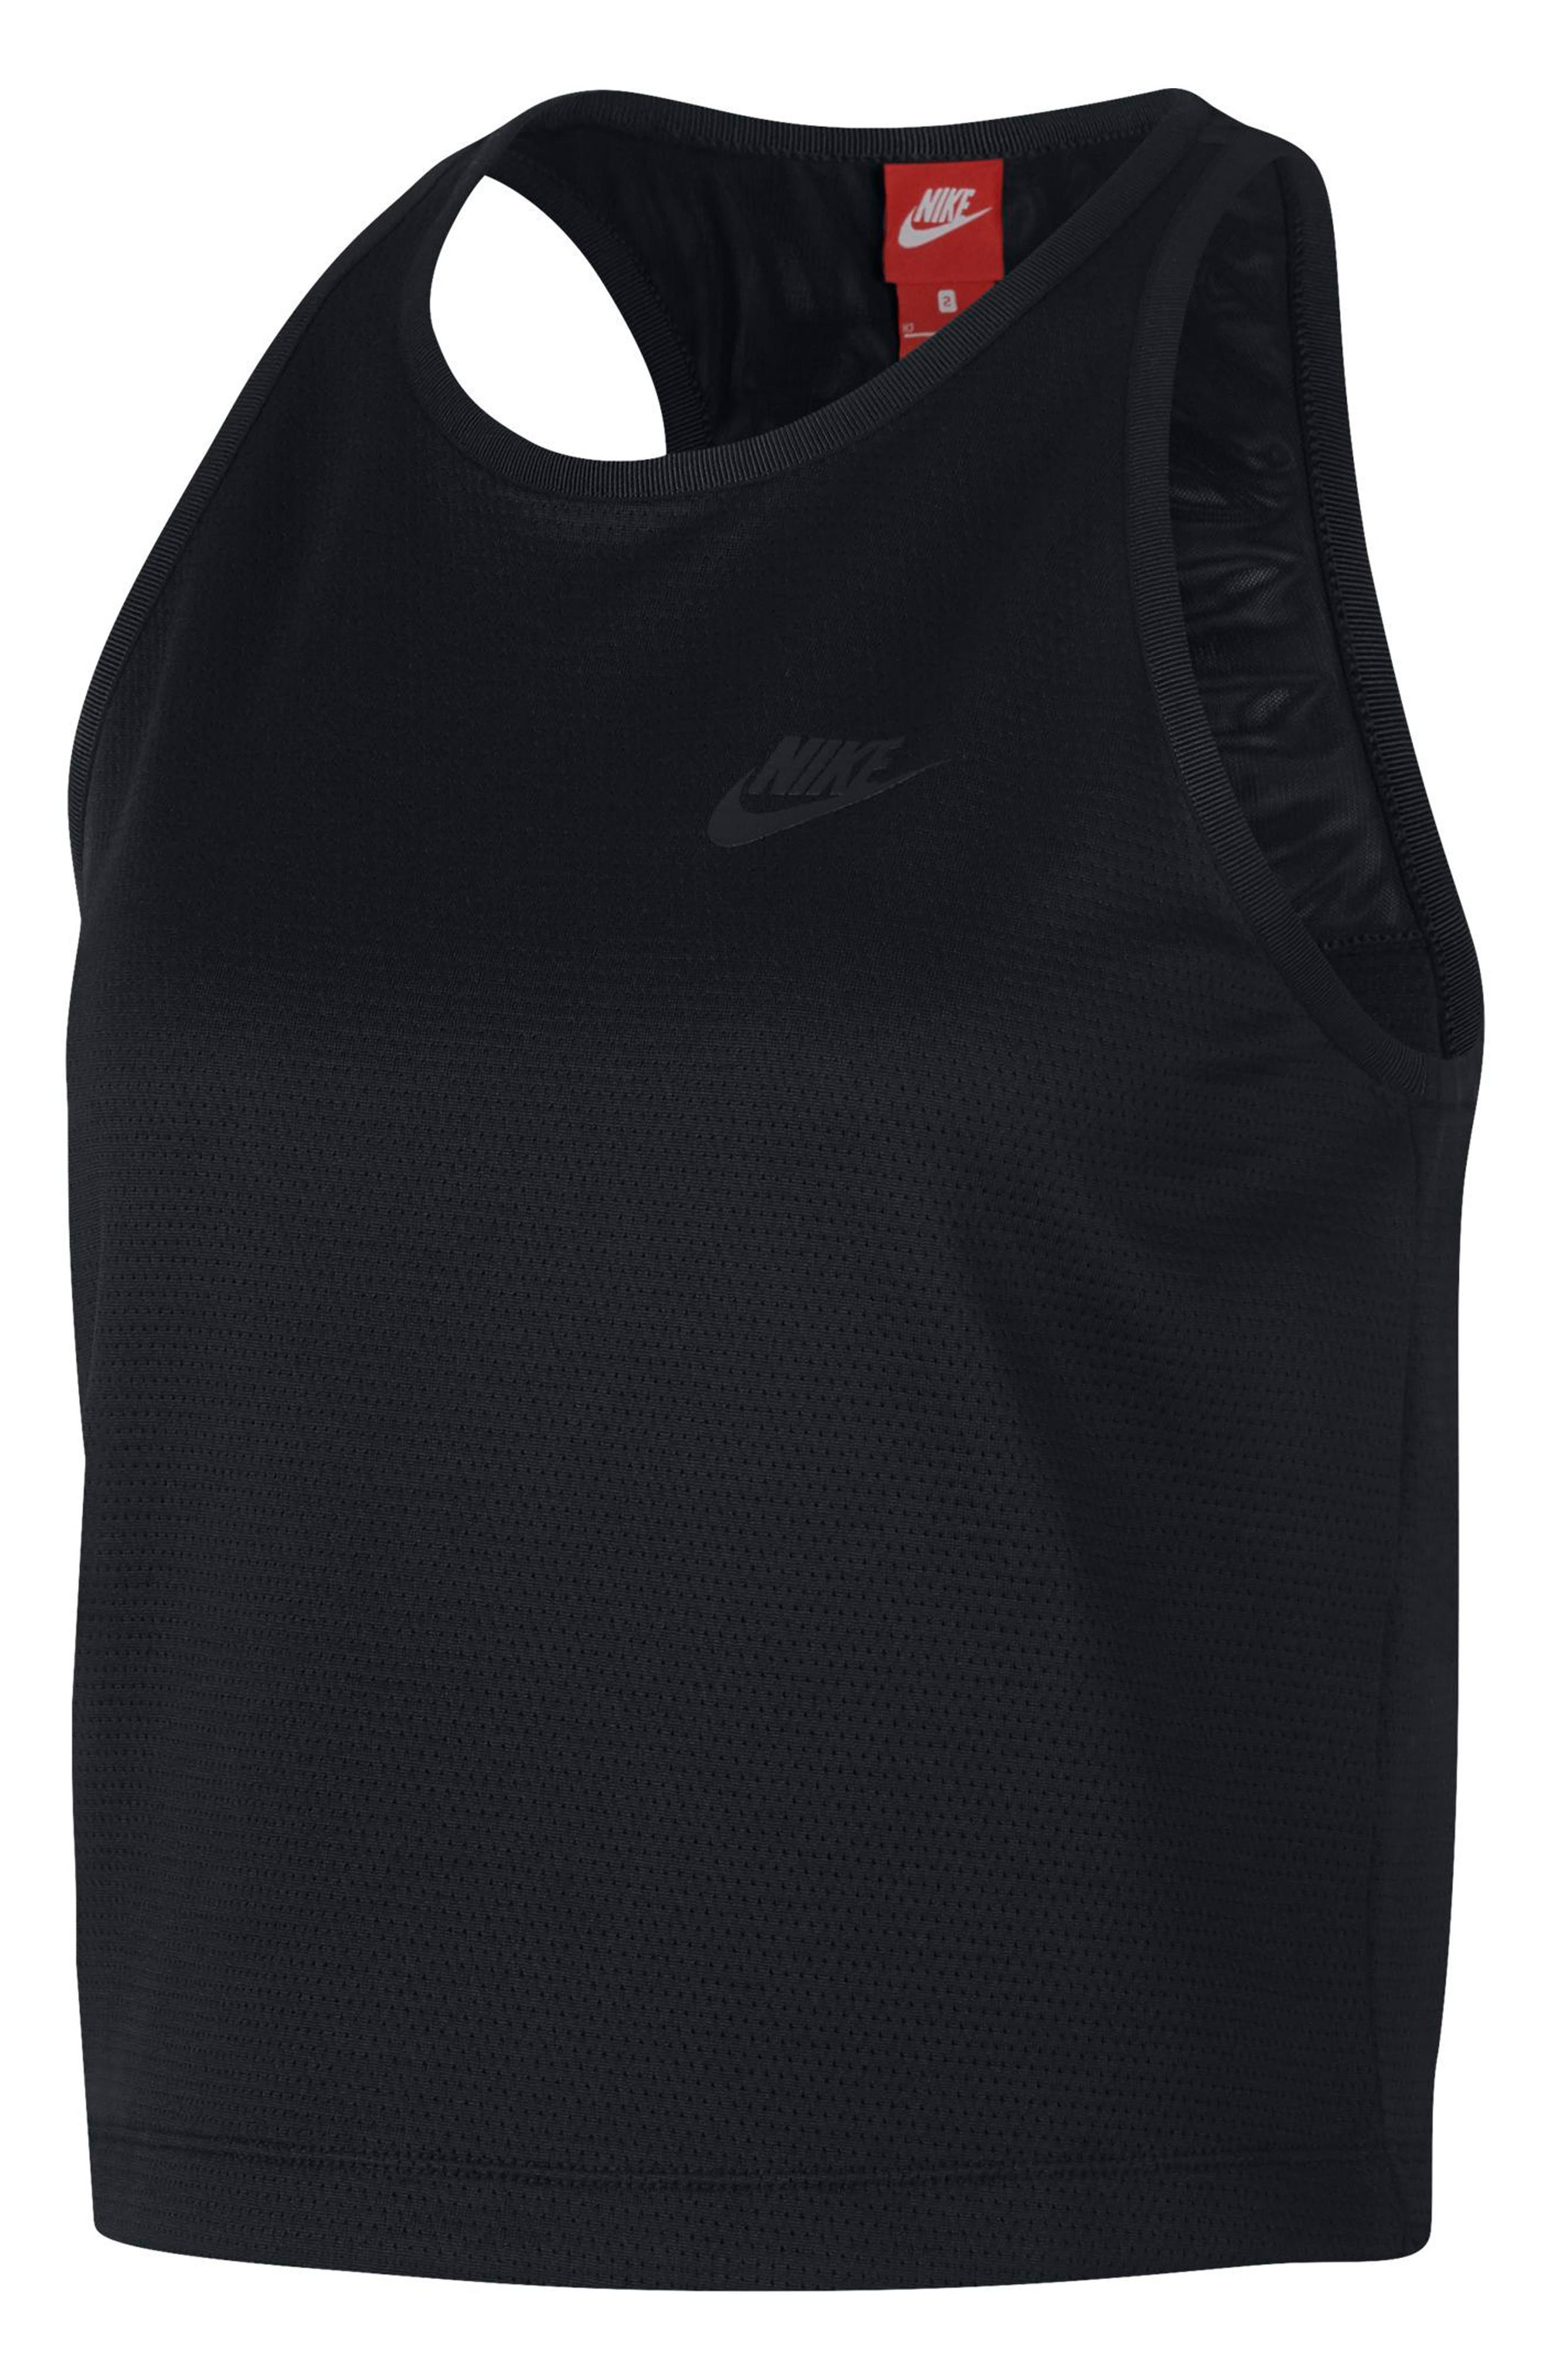 Sportswear Tech Fleece Women's Crop Tank by Nike